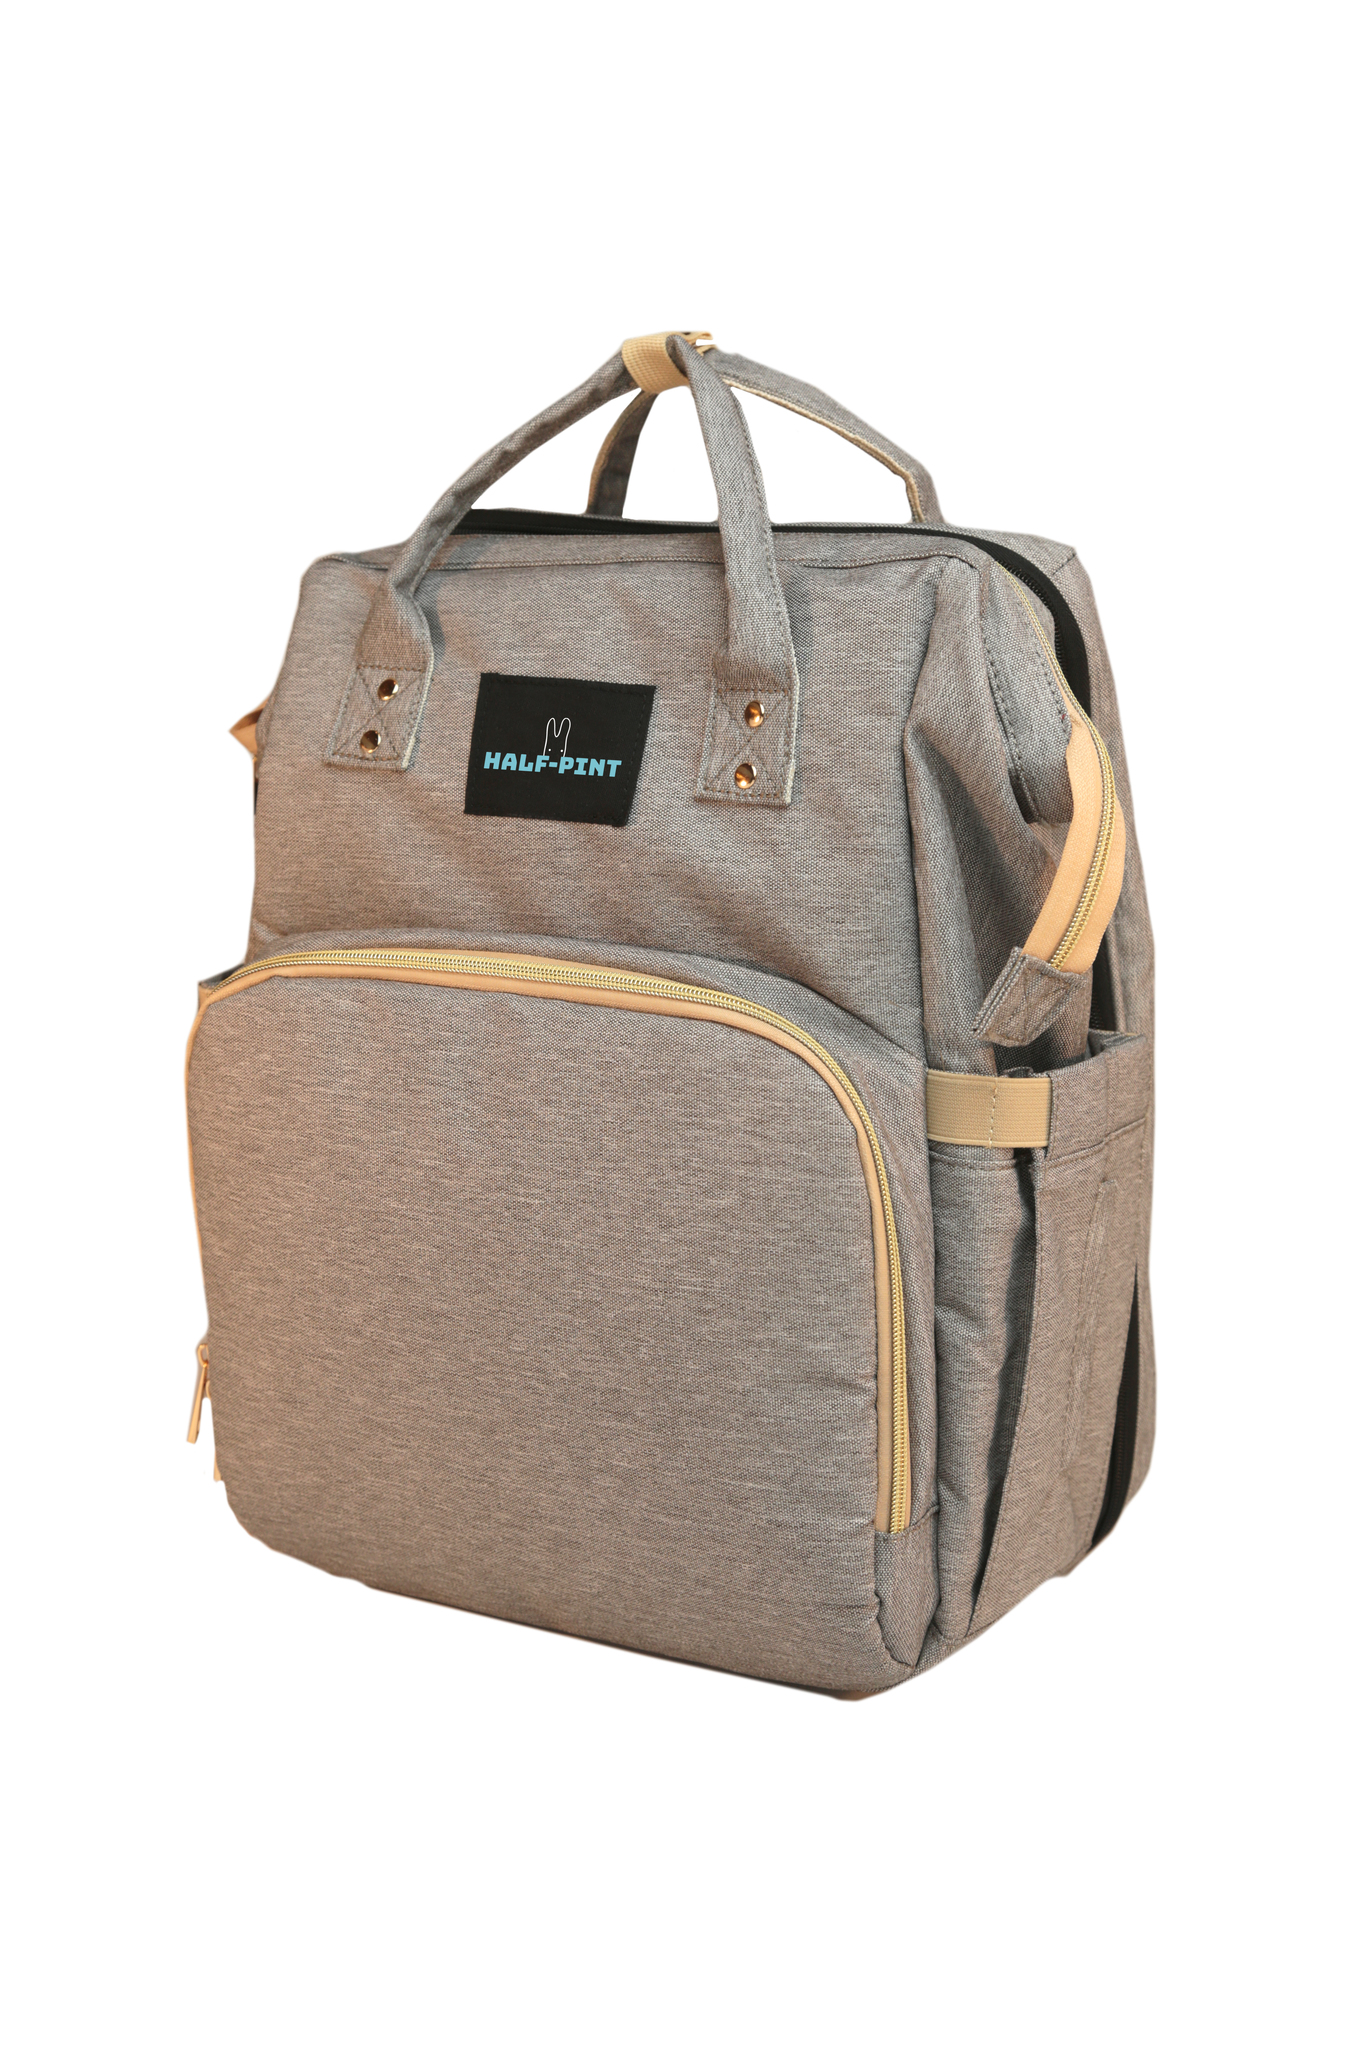 Half-Pint Premium Diaper Backpack-Crib